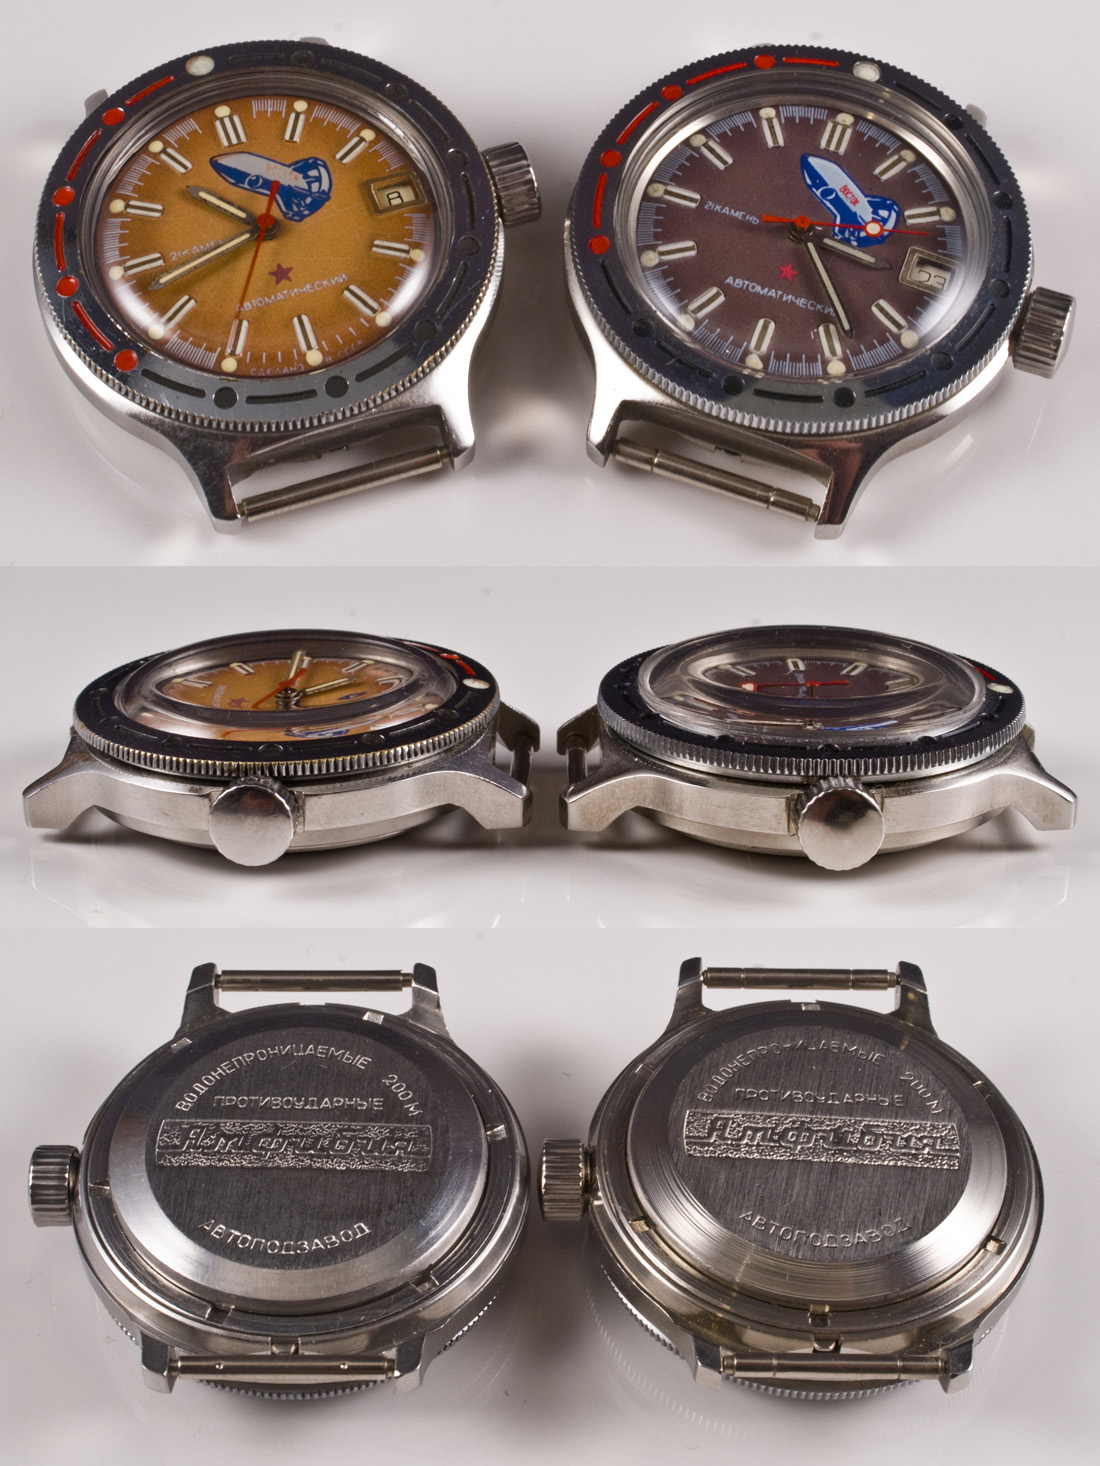 Vostok non identifiée. 594969d1325824824-two-rockets-better-than-one-2-vostok-amphibian-space-watches-diving-space-boctokrocket_01